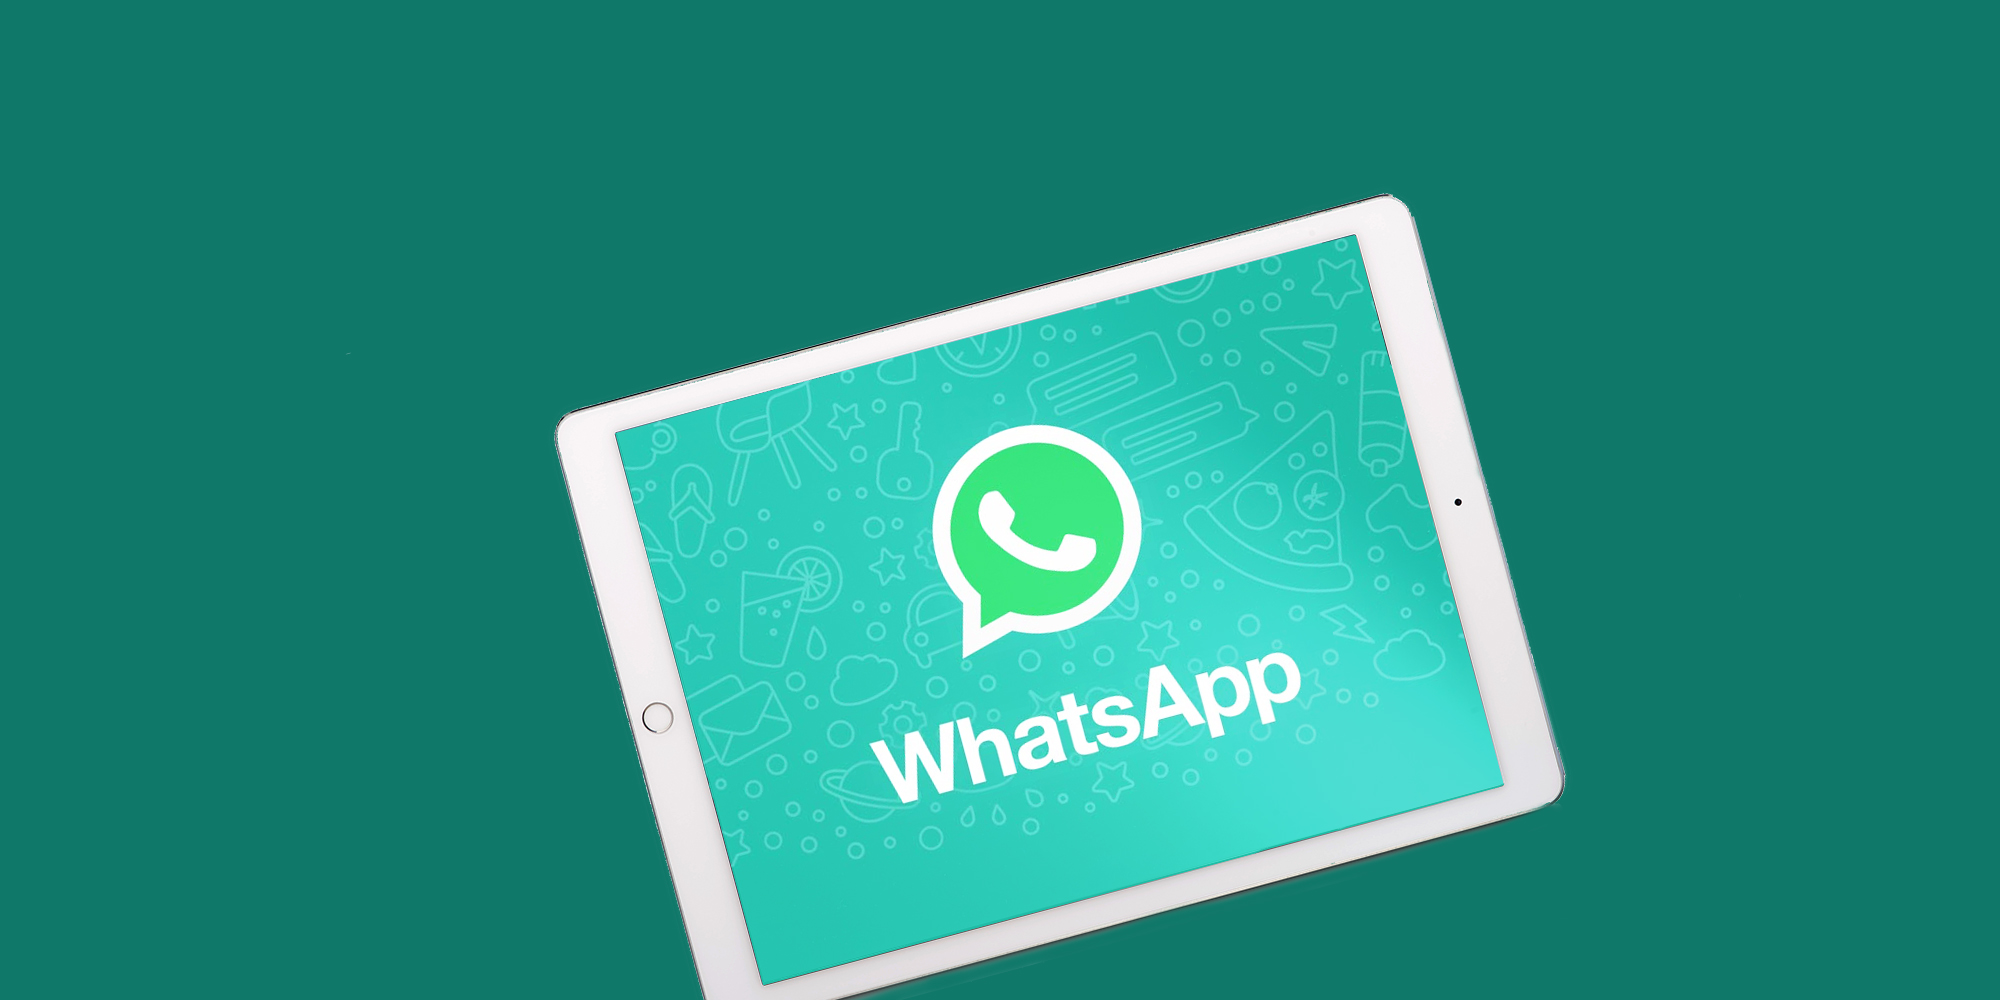 WhatsApp iPad